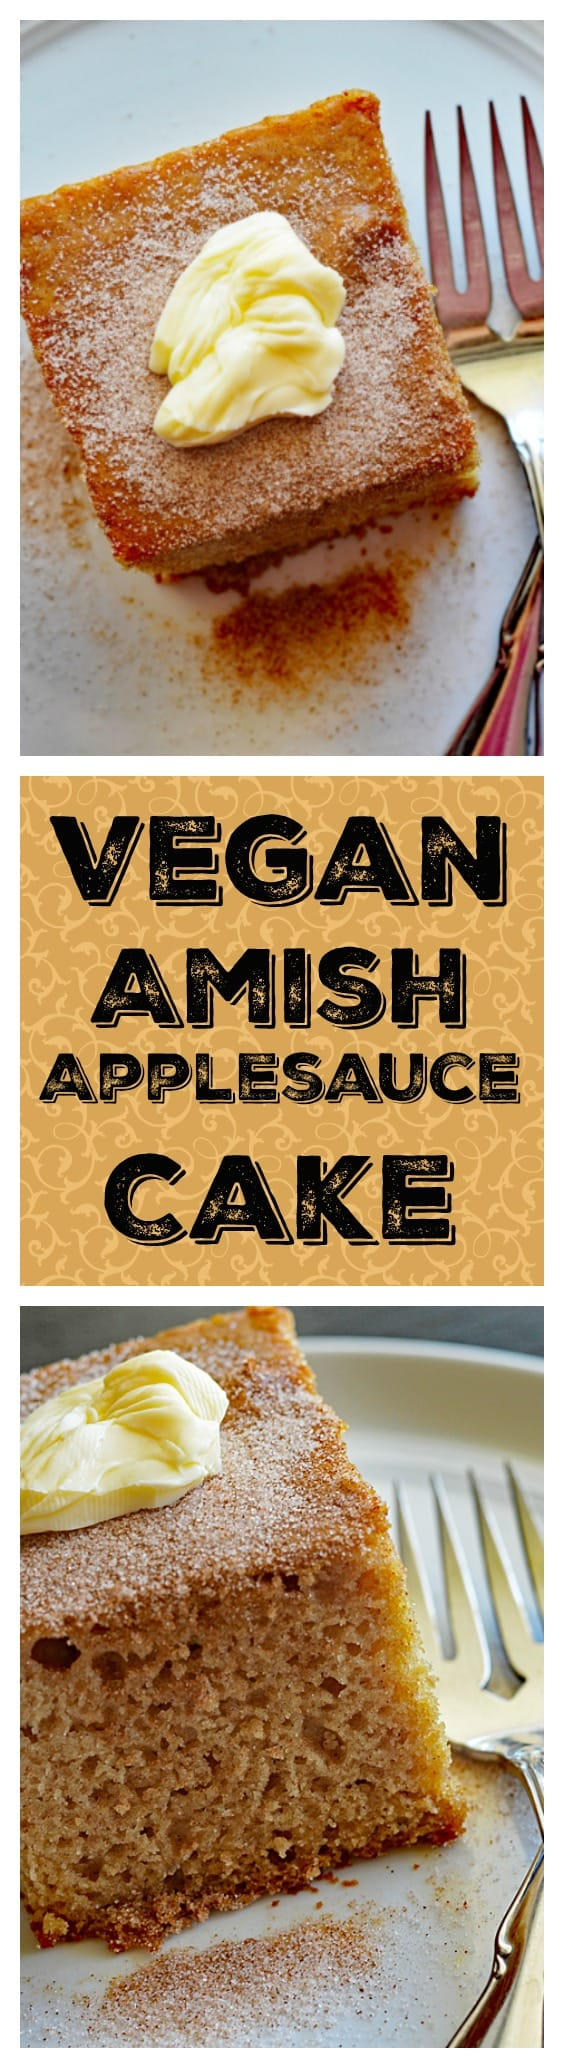 Vegan Amish Applesauce Snackin' Cake